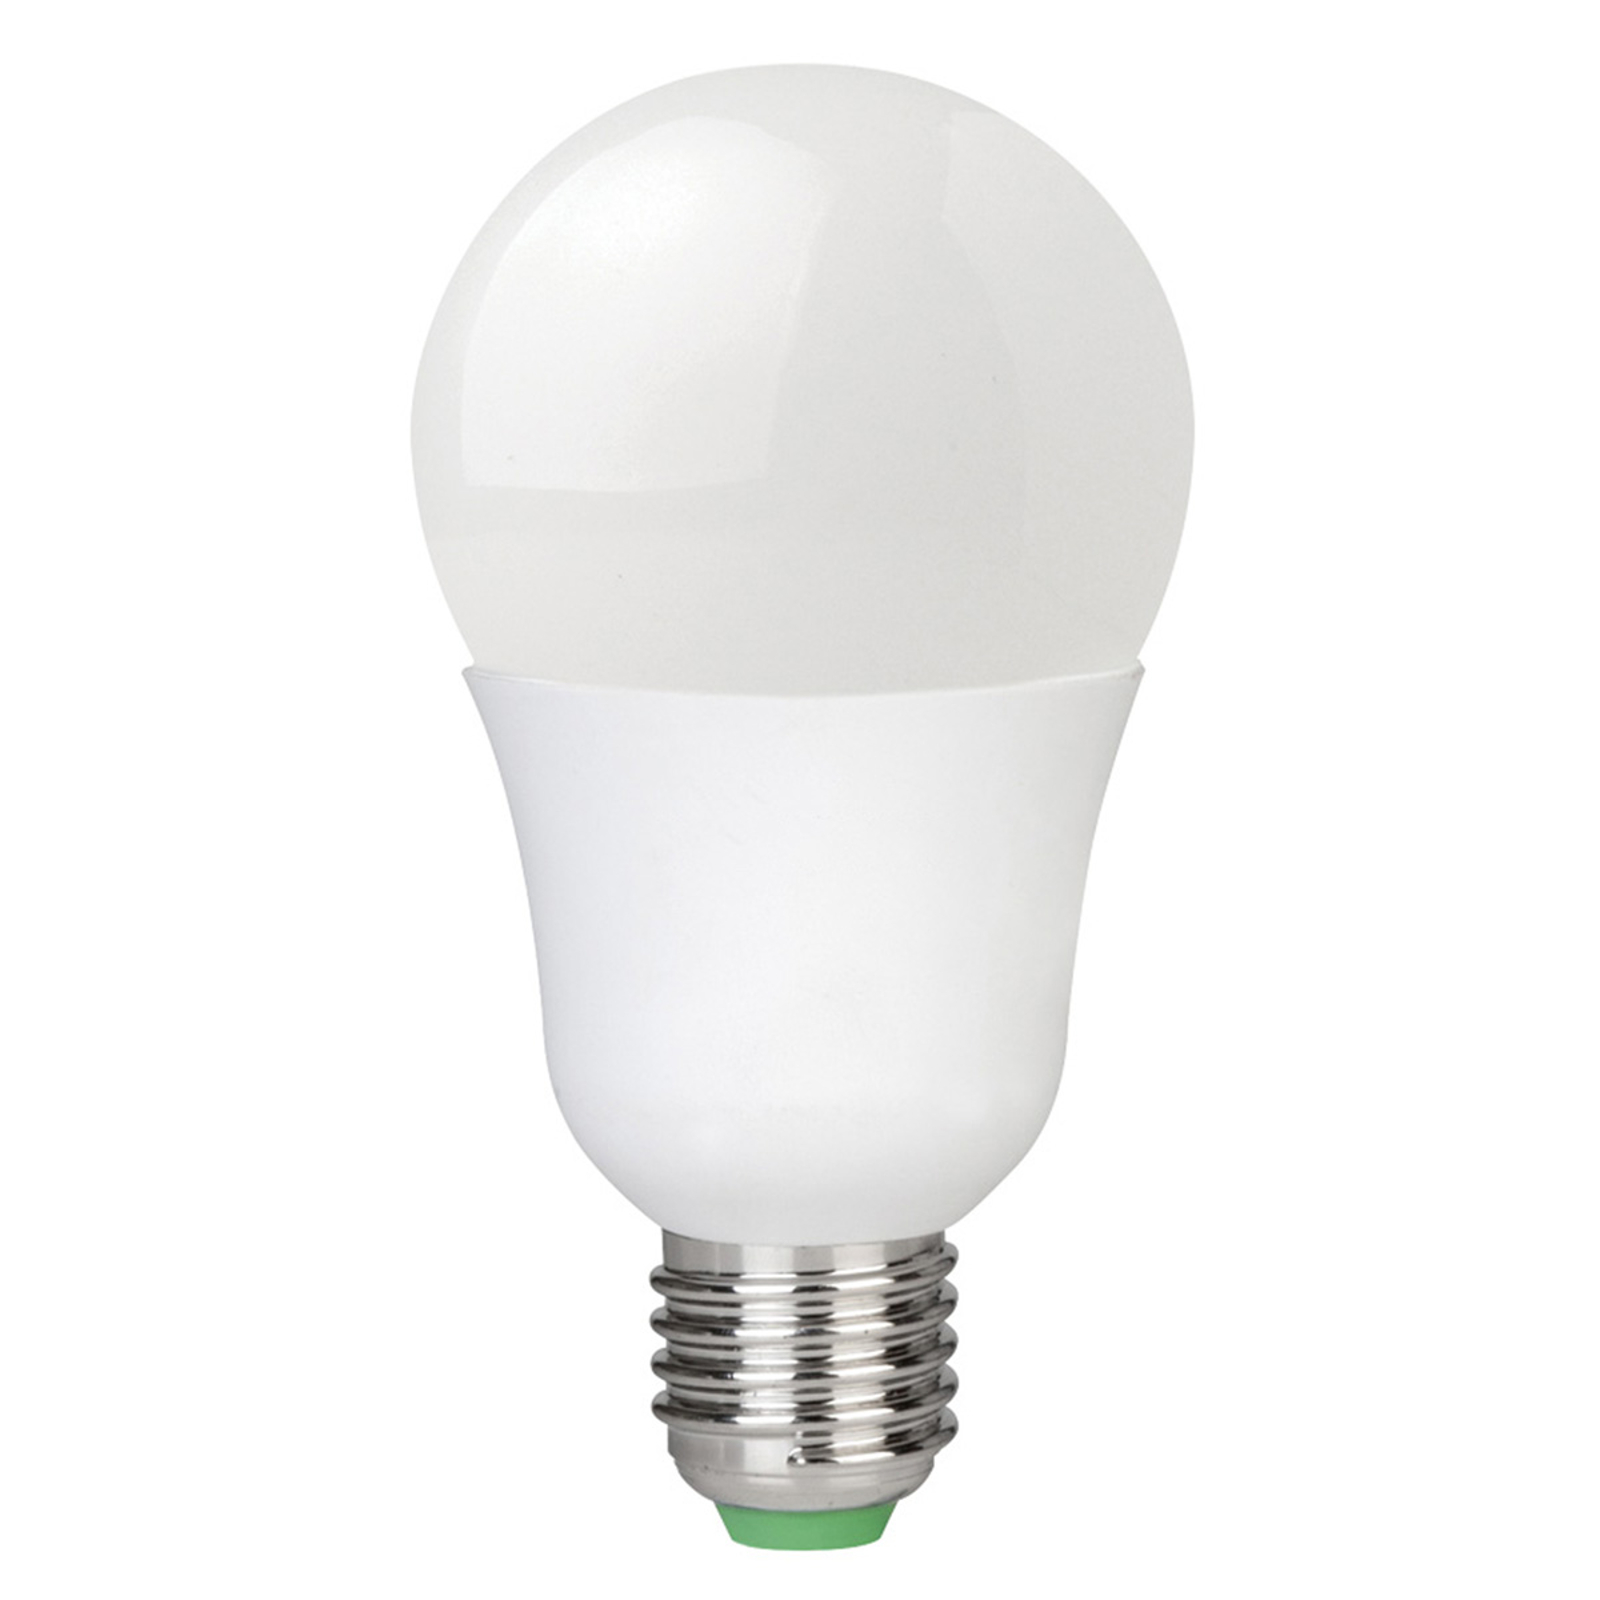 E27 11W 828 LED-Lampe MEGAMAN Smart Lighting